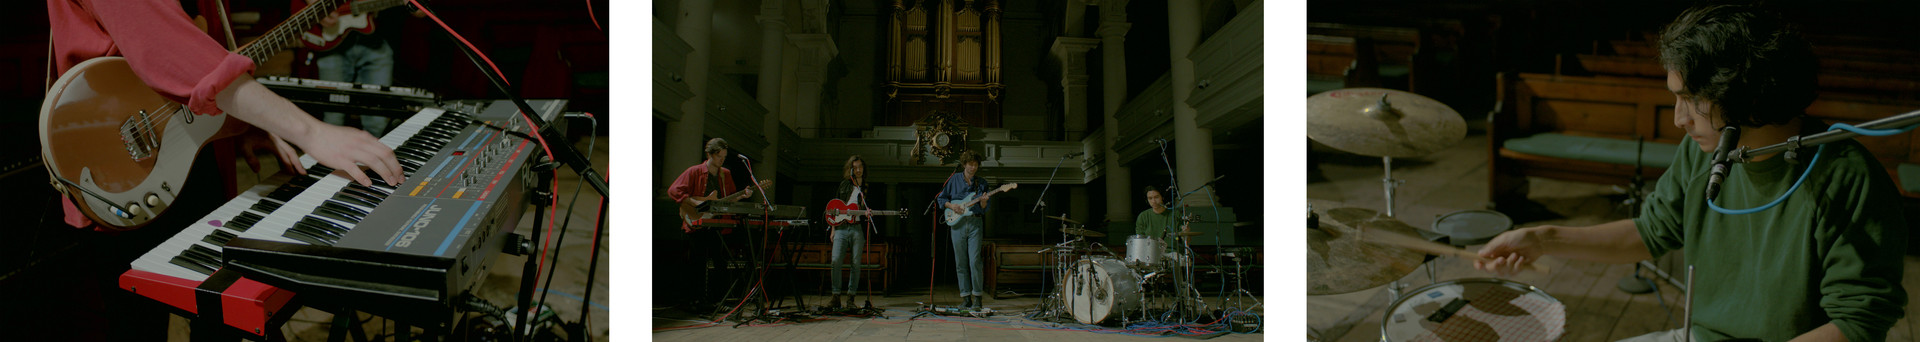 Flyte - Church Sessions